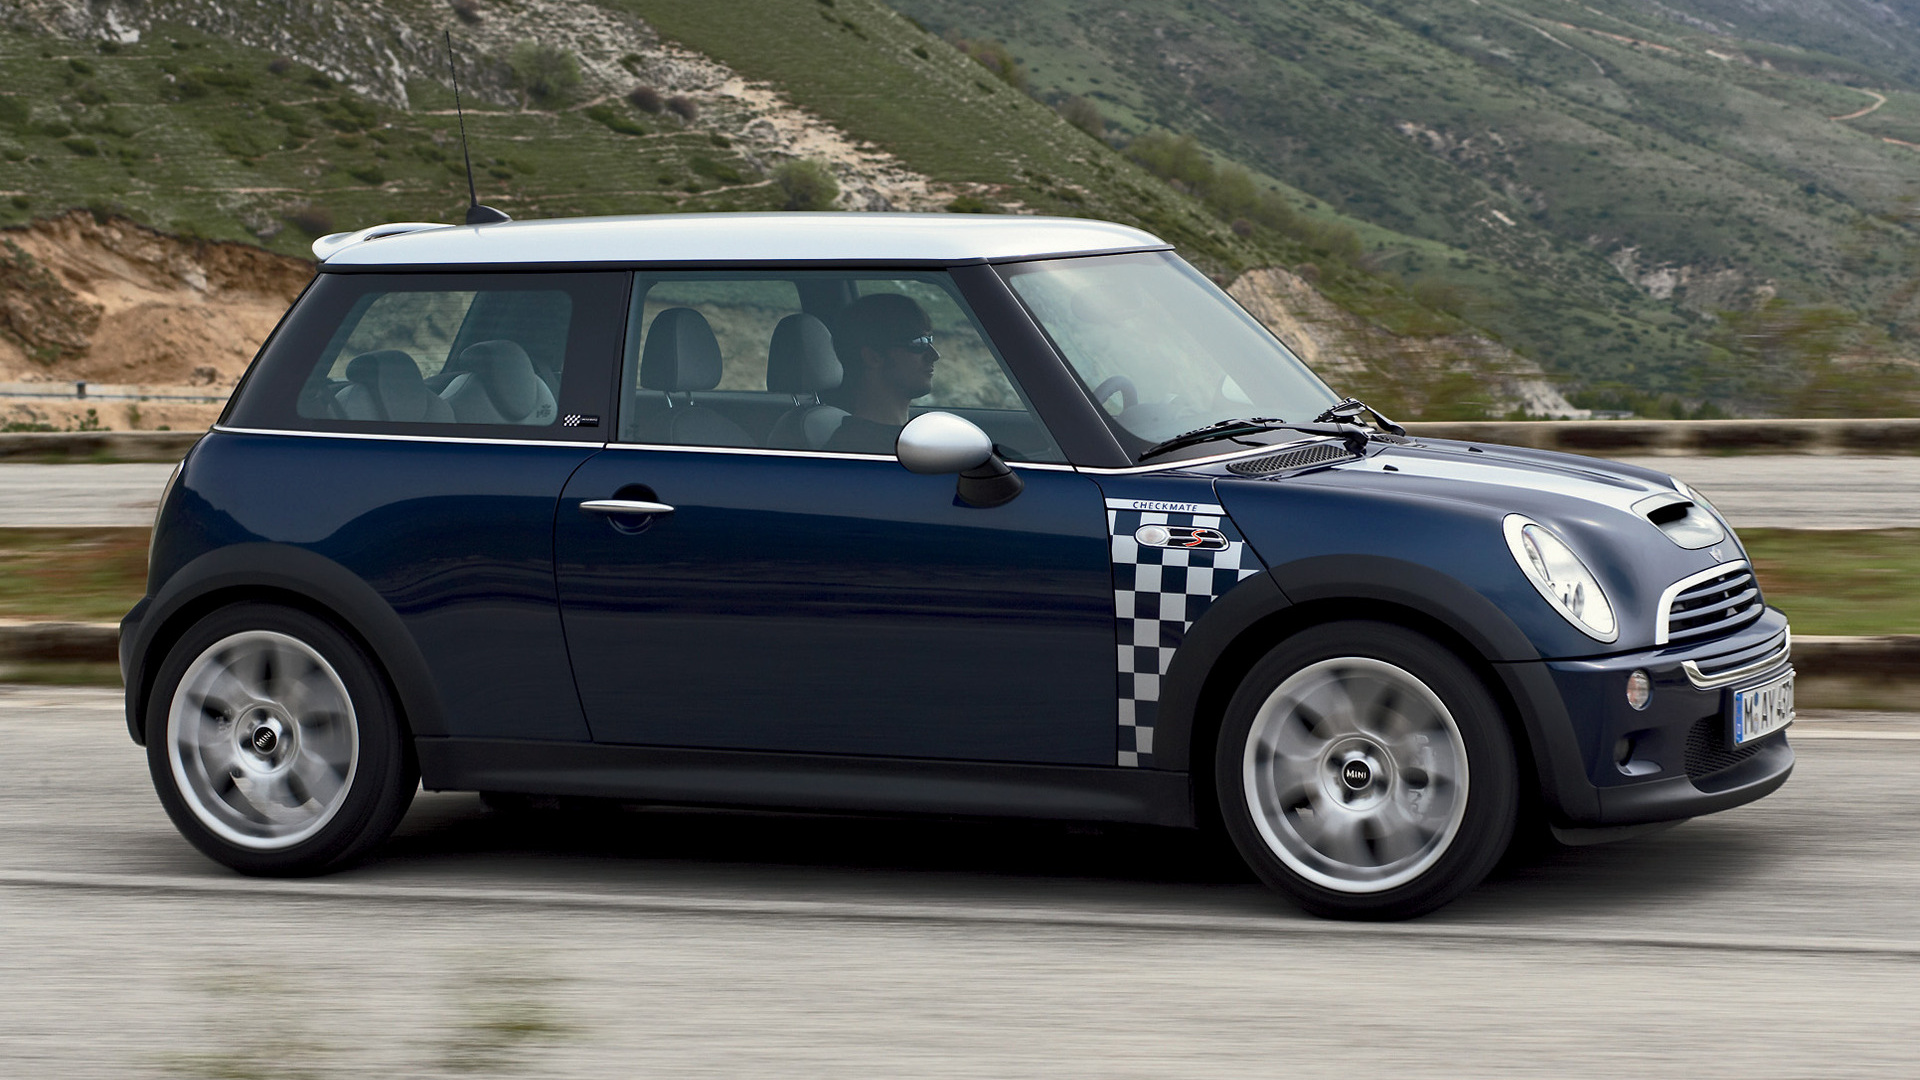 Mini Cooper S Checkmate 2005 Wallpapers And Hd Images